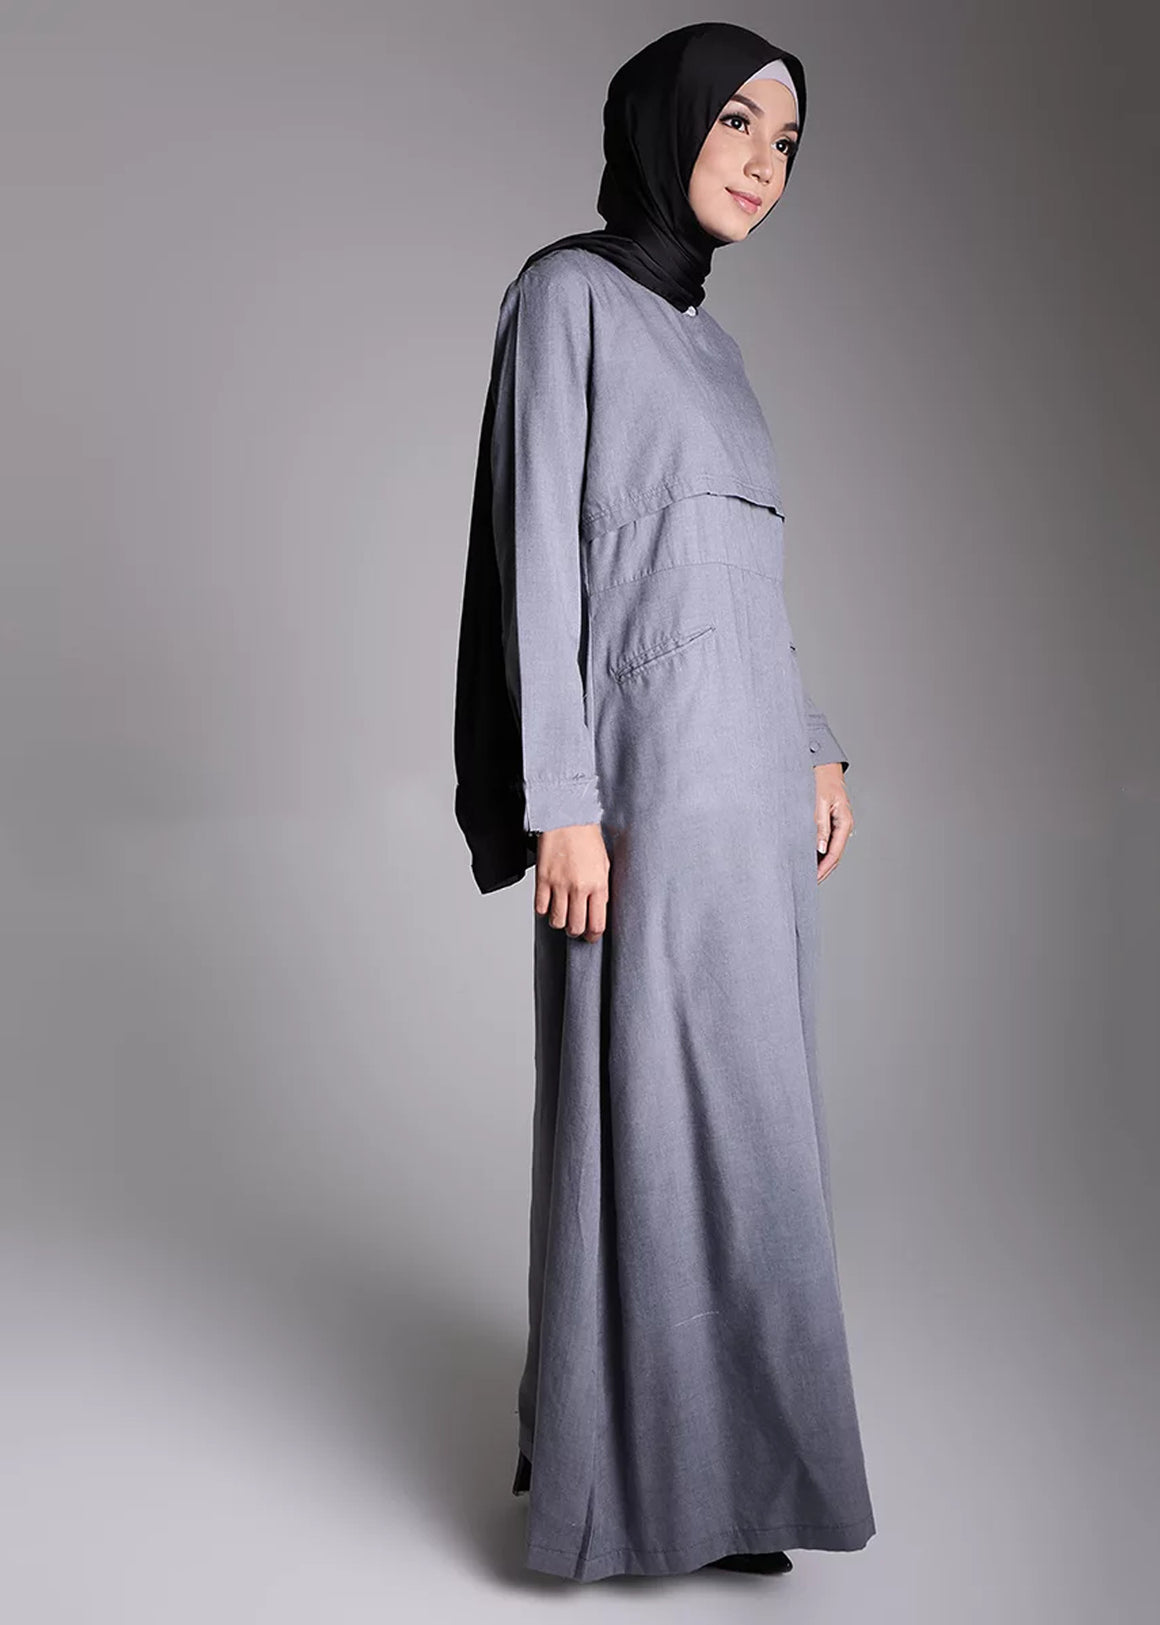 Basaya Dress Grey - eclemix